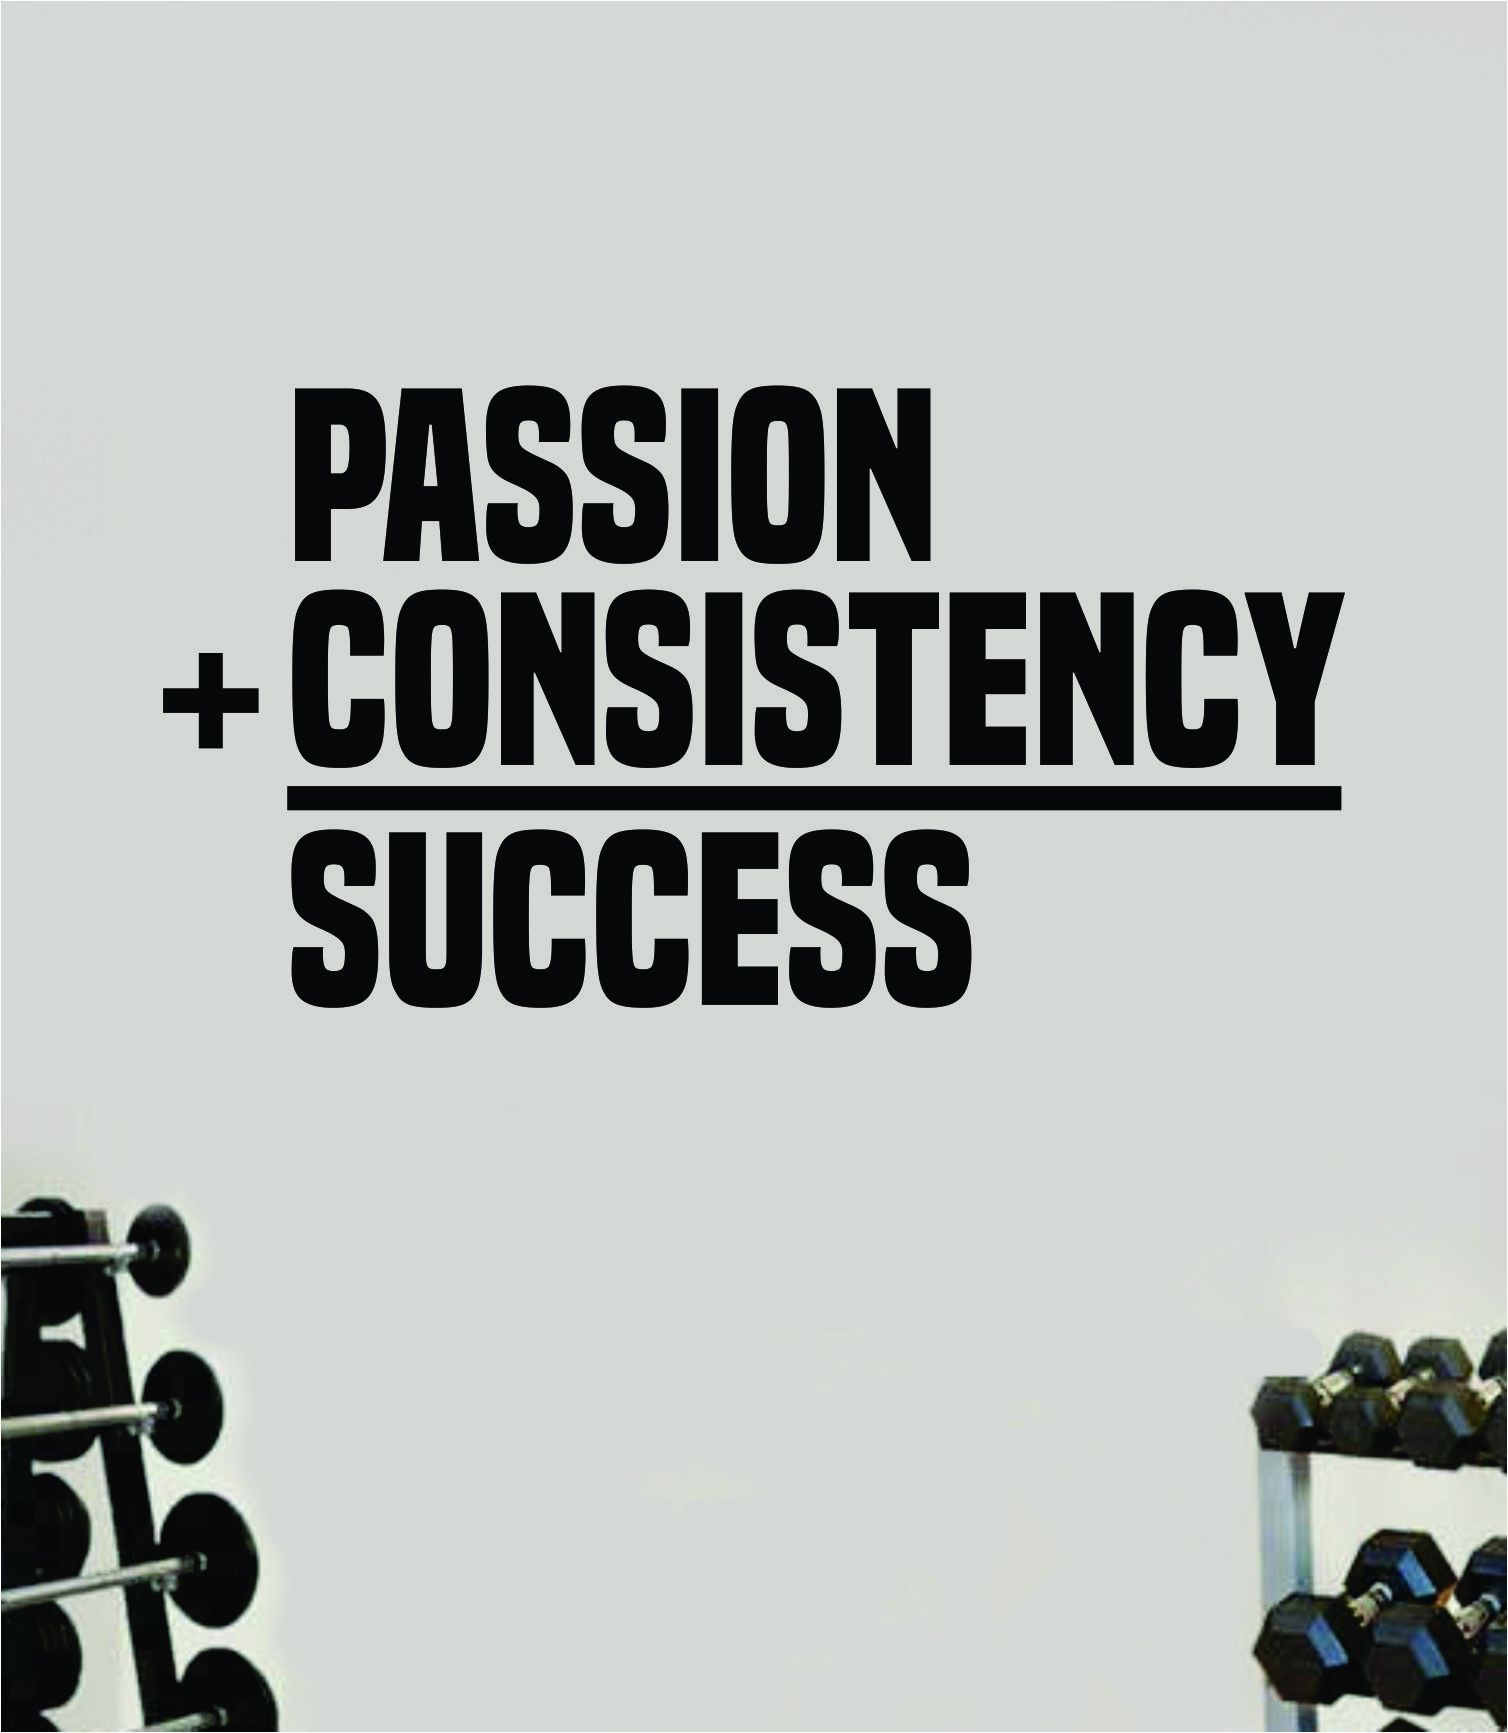 Passion Consistency Success Gym Fitness Wall Decal Home Decor Bedroom Room Vinyl Sticker Teen Art Quote Beast Lift Strong Inspirational Motivational Health Girls - yellow